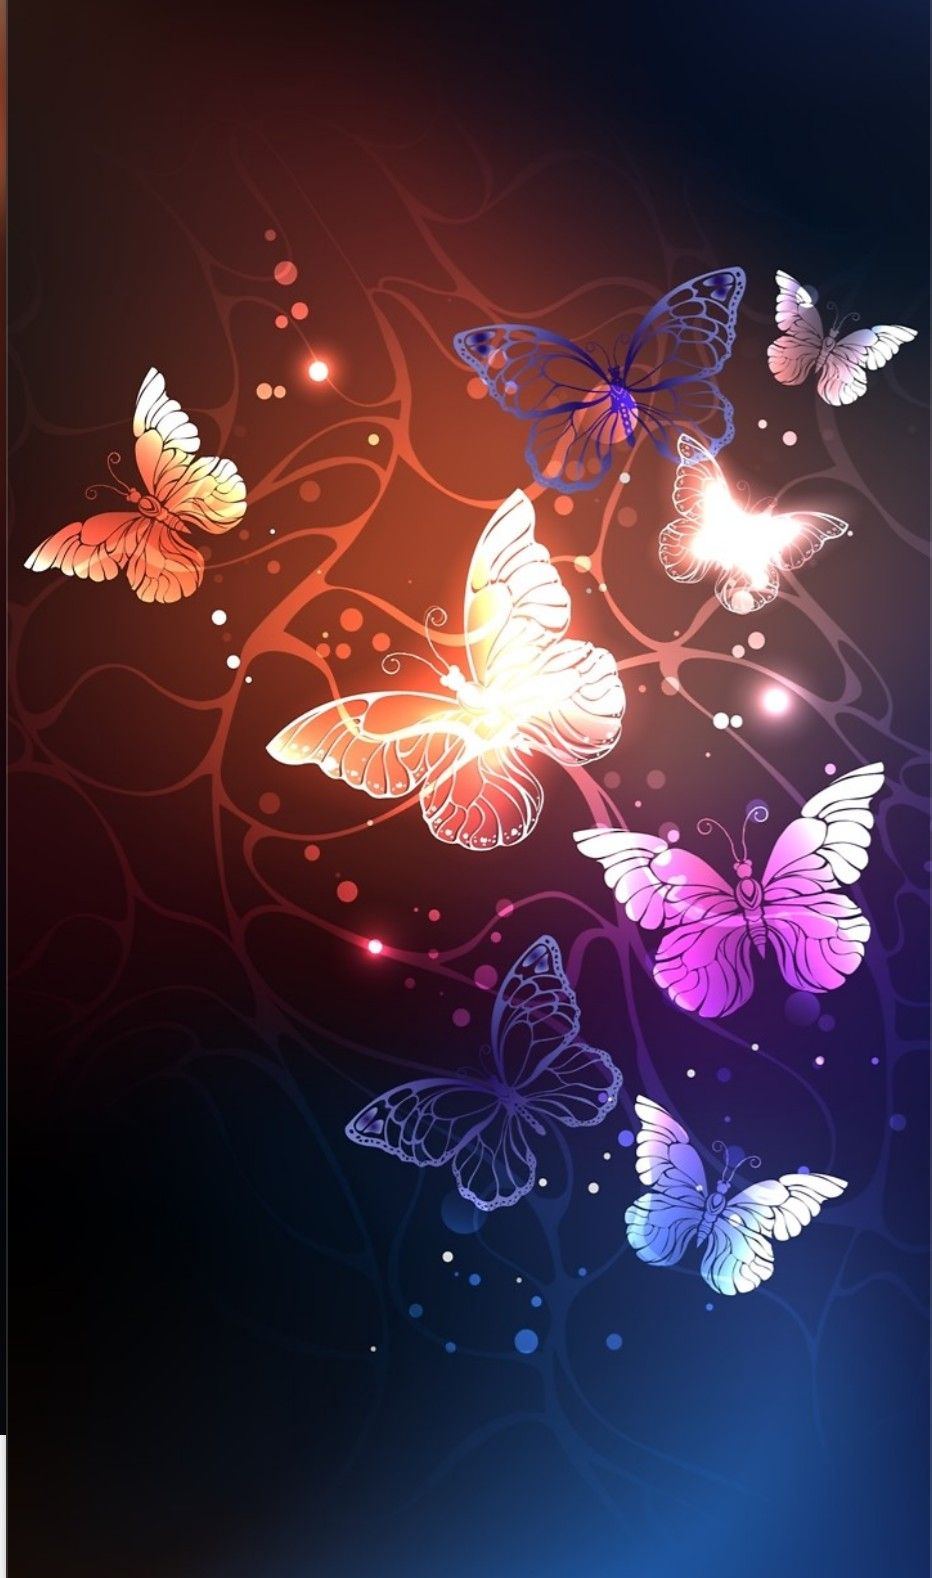 Pin By Rainy Chandler On Butterfly Butterfly Wallpaper Wallpaper Iphone Cute Gold Wallpaper Phone